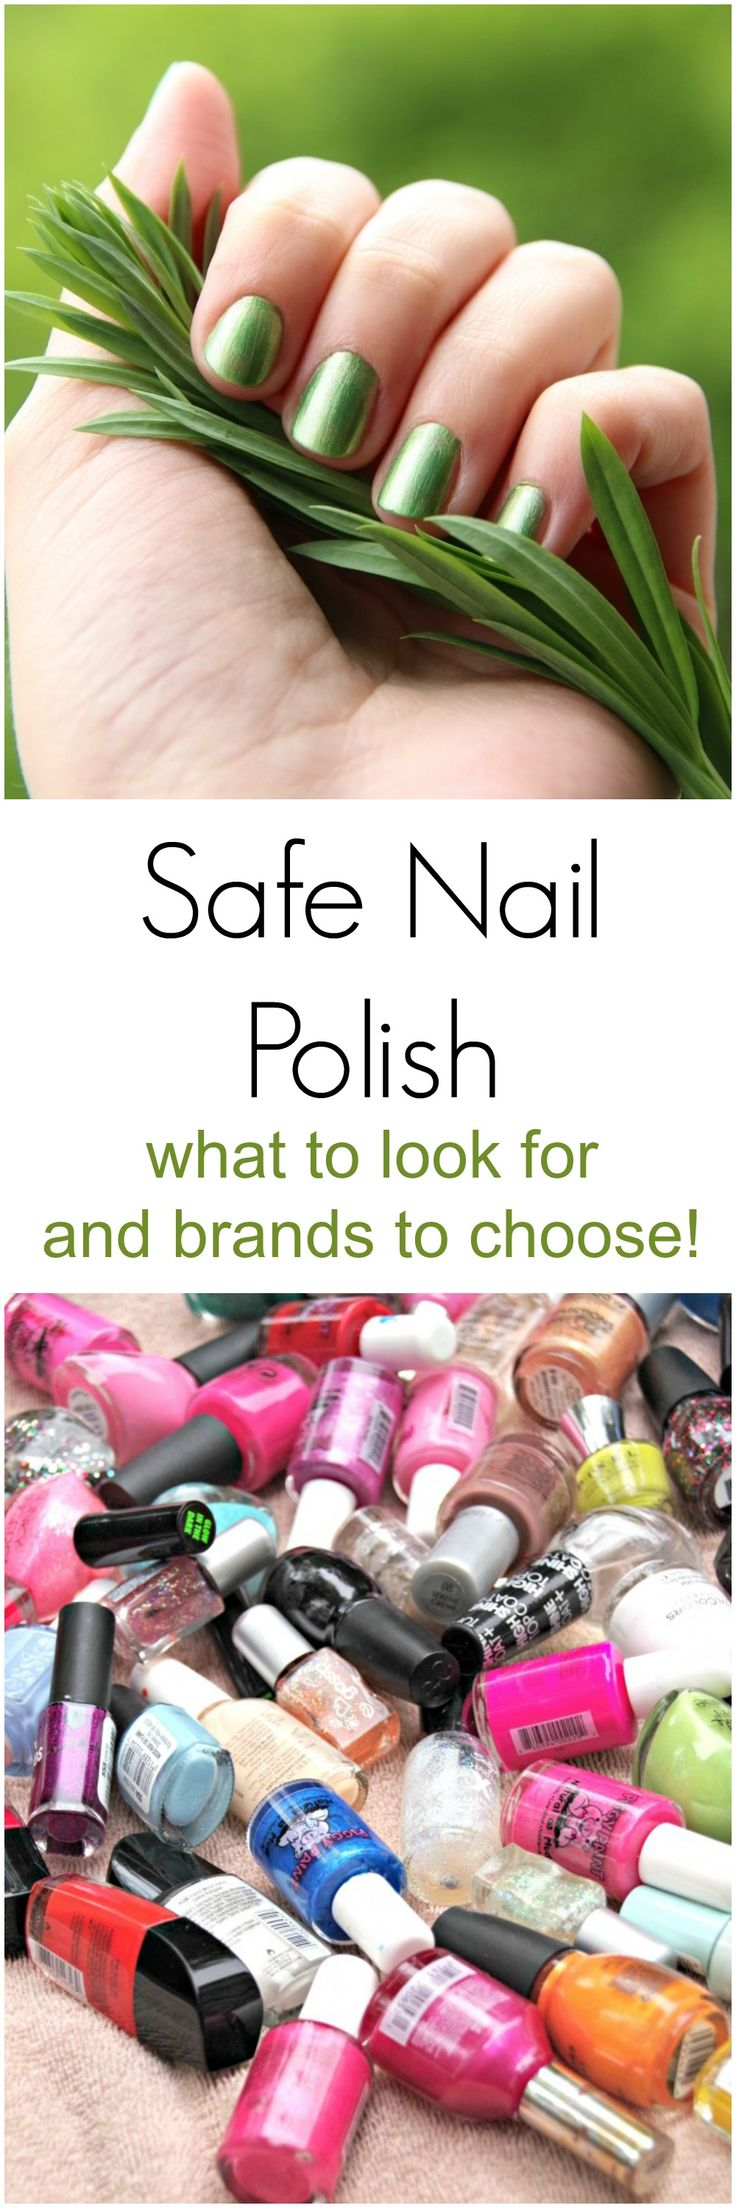 The Frustrating Search for the Best Safe Nail Polish Brands